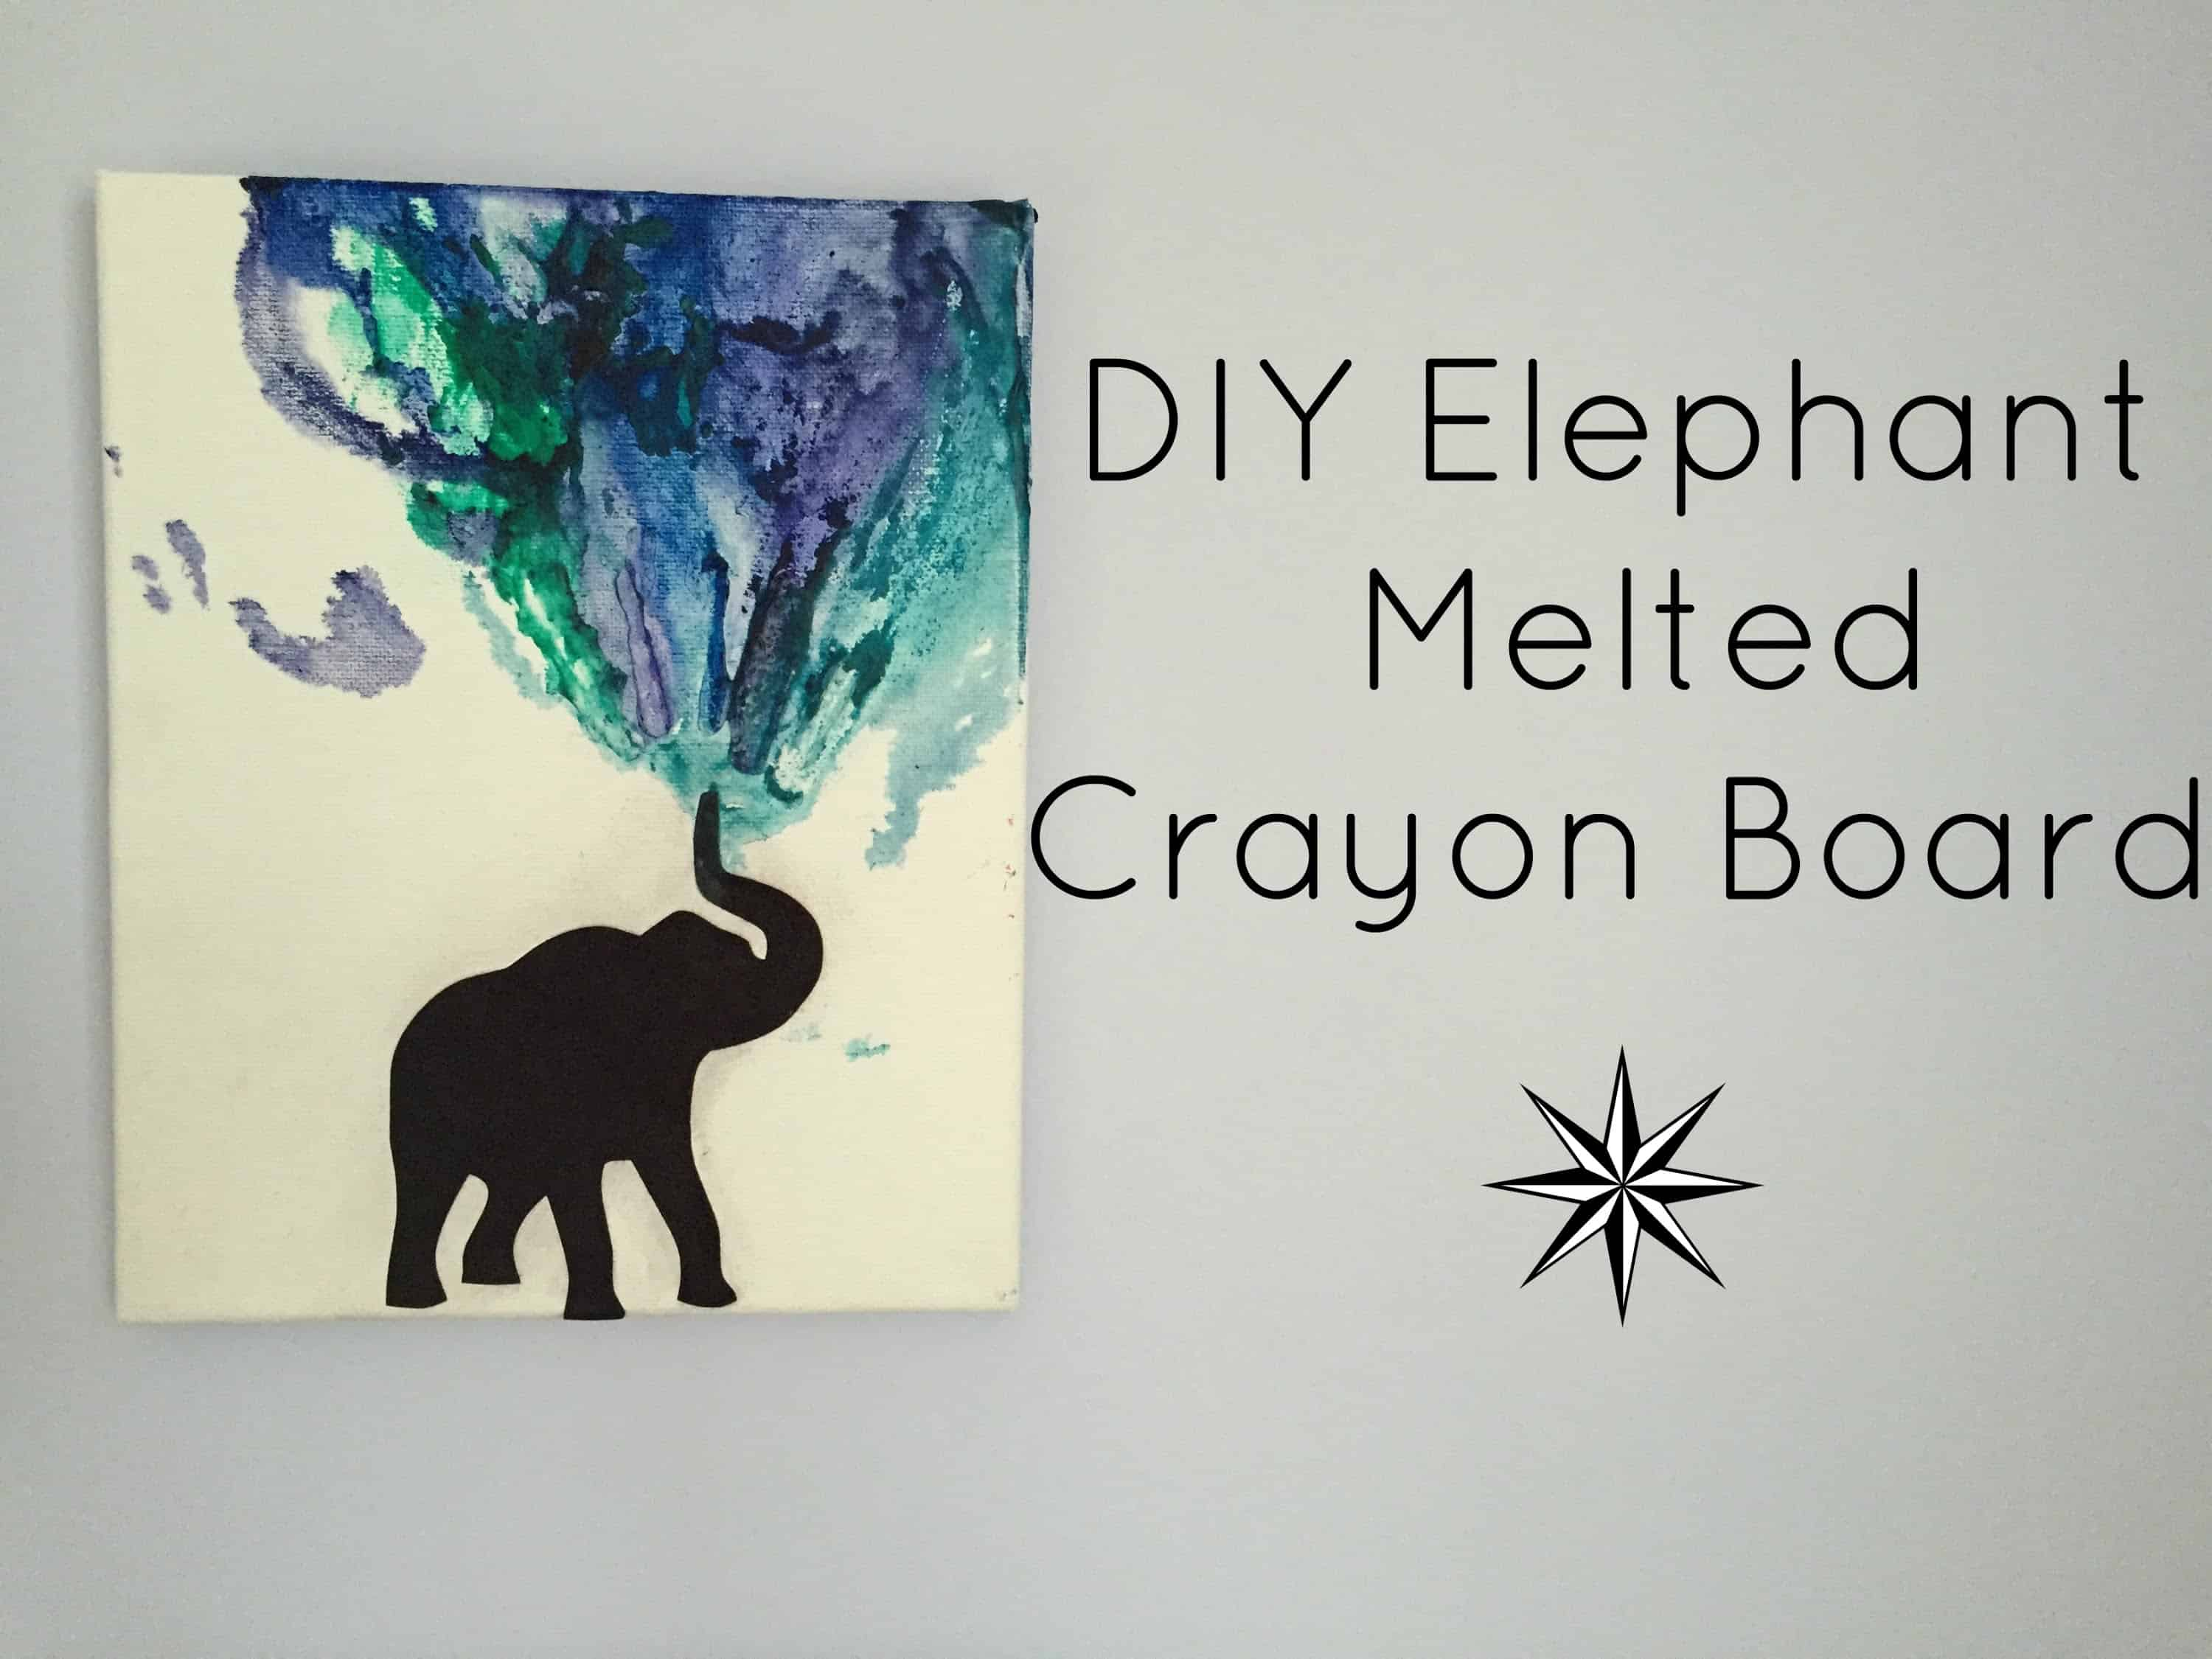 Diy elephant melted crayon board